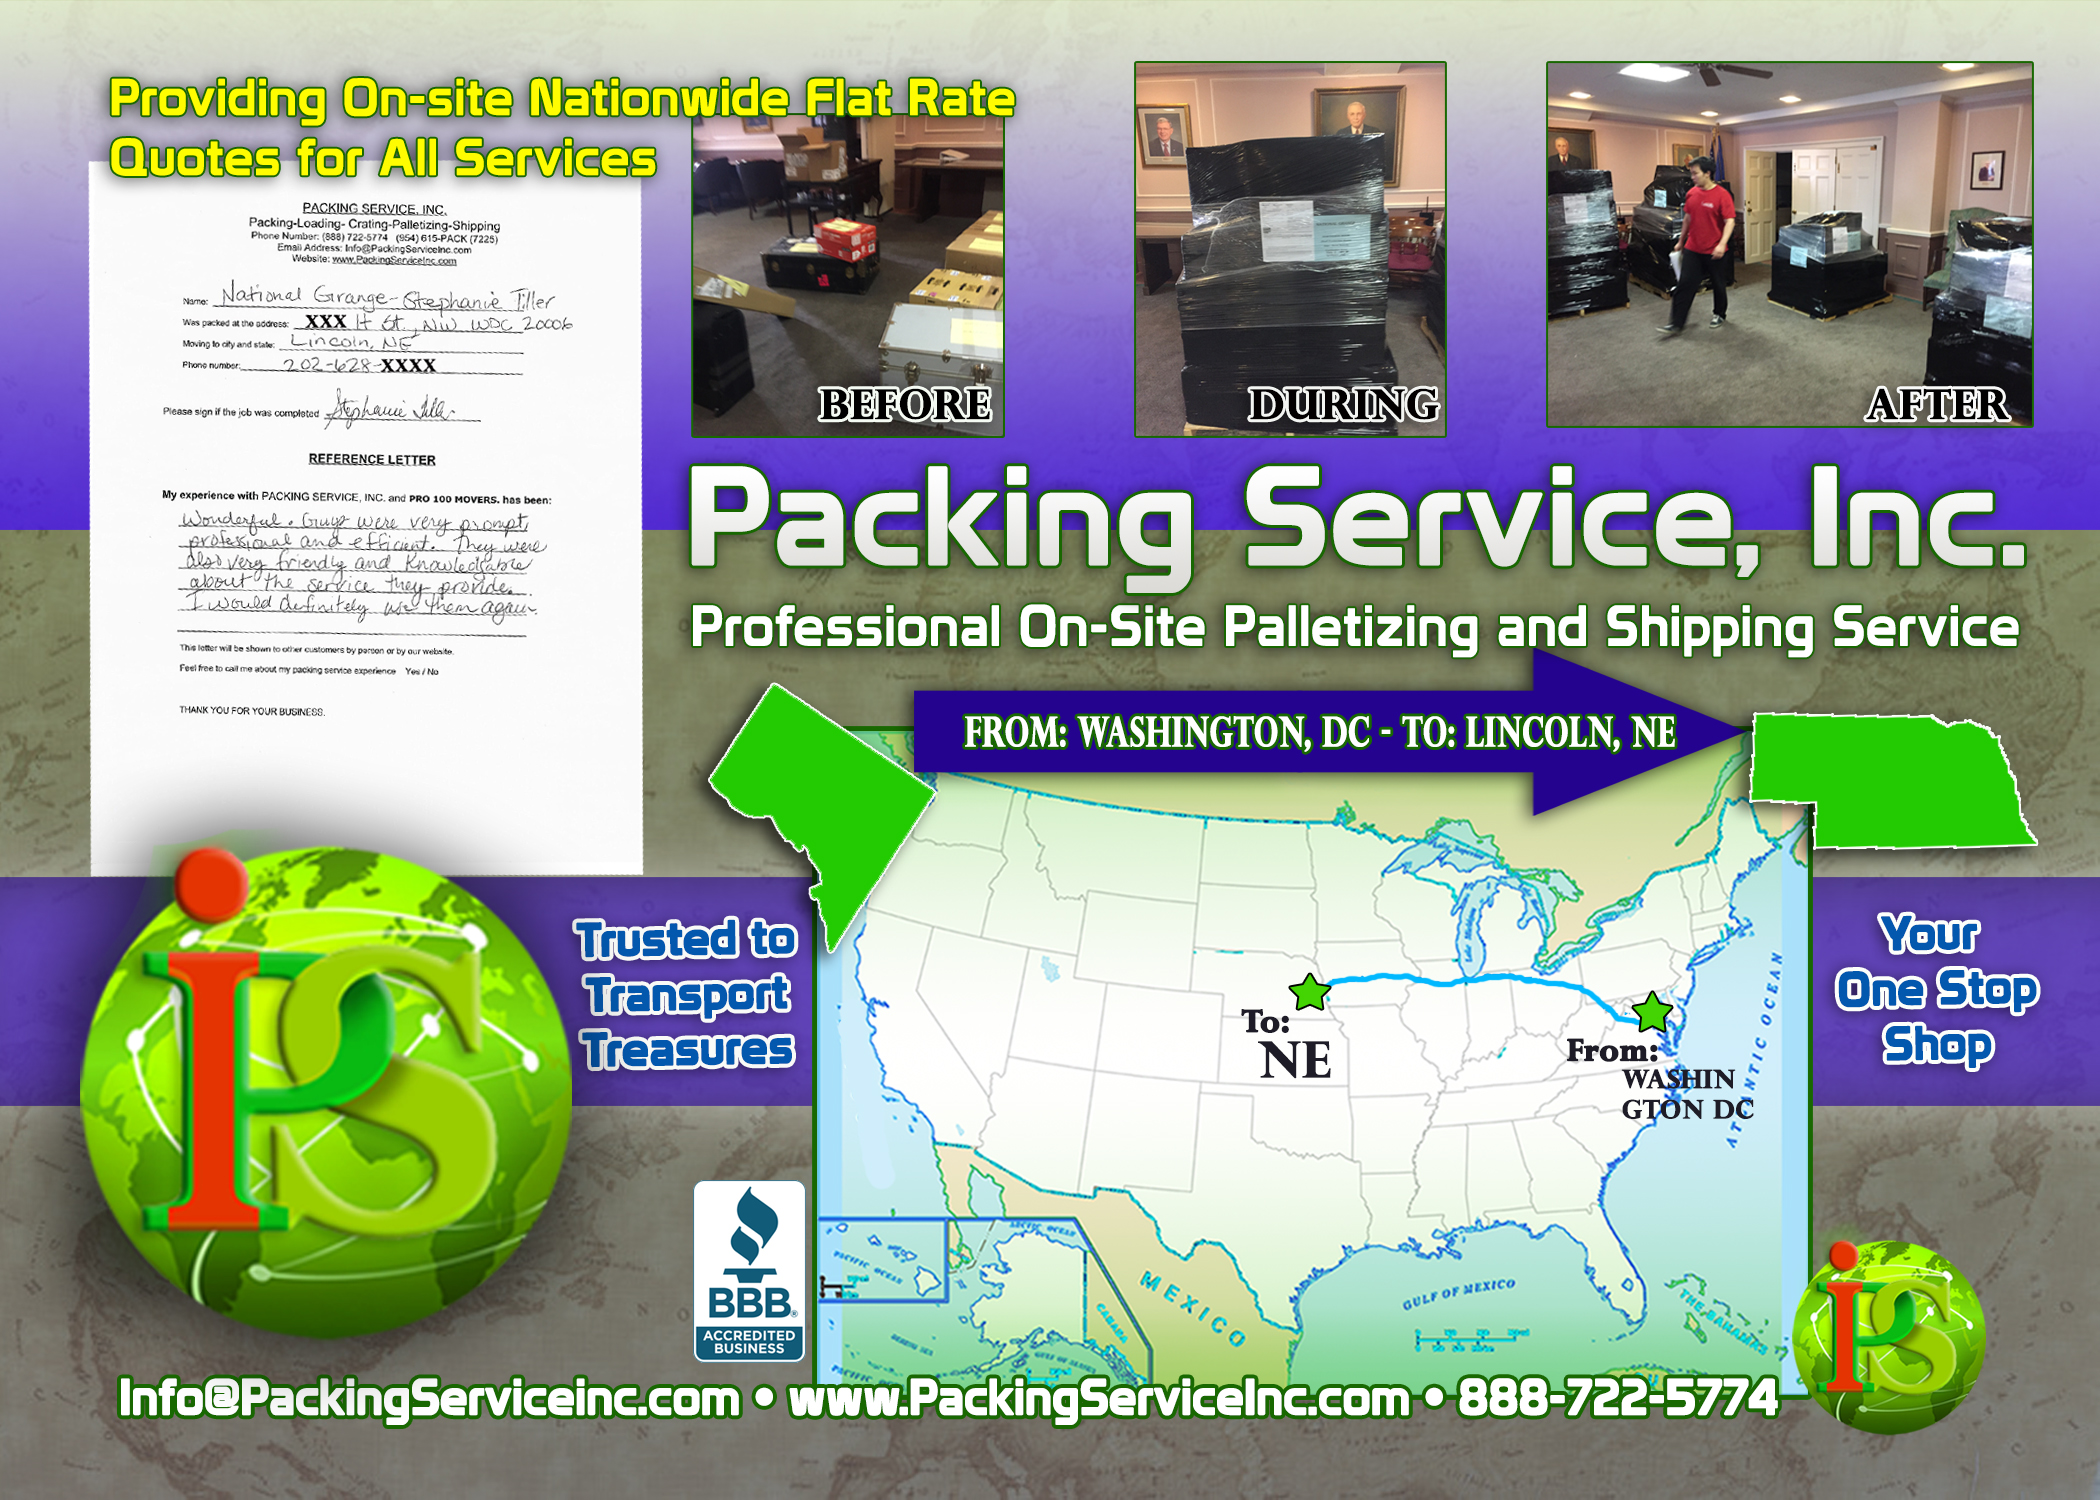 Palletizing Boxes and Shipping Services DC-NE with Packing Service, Inc. - 612